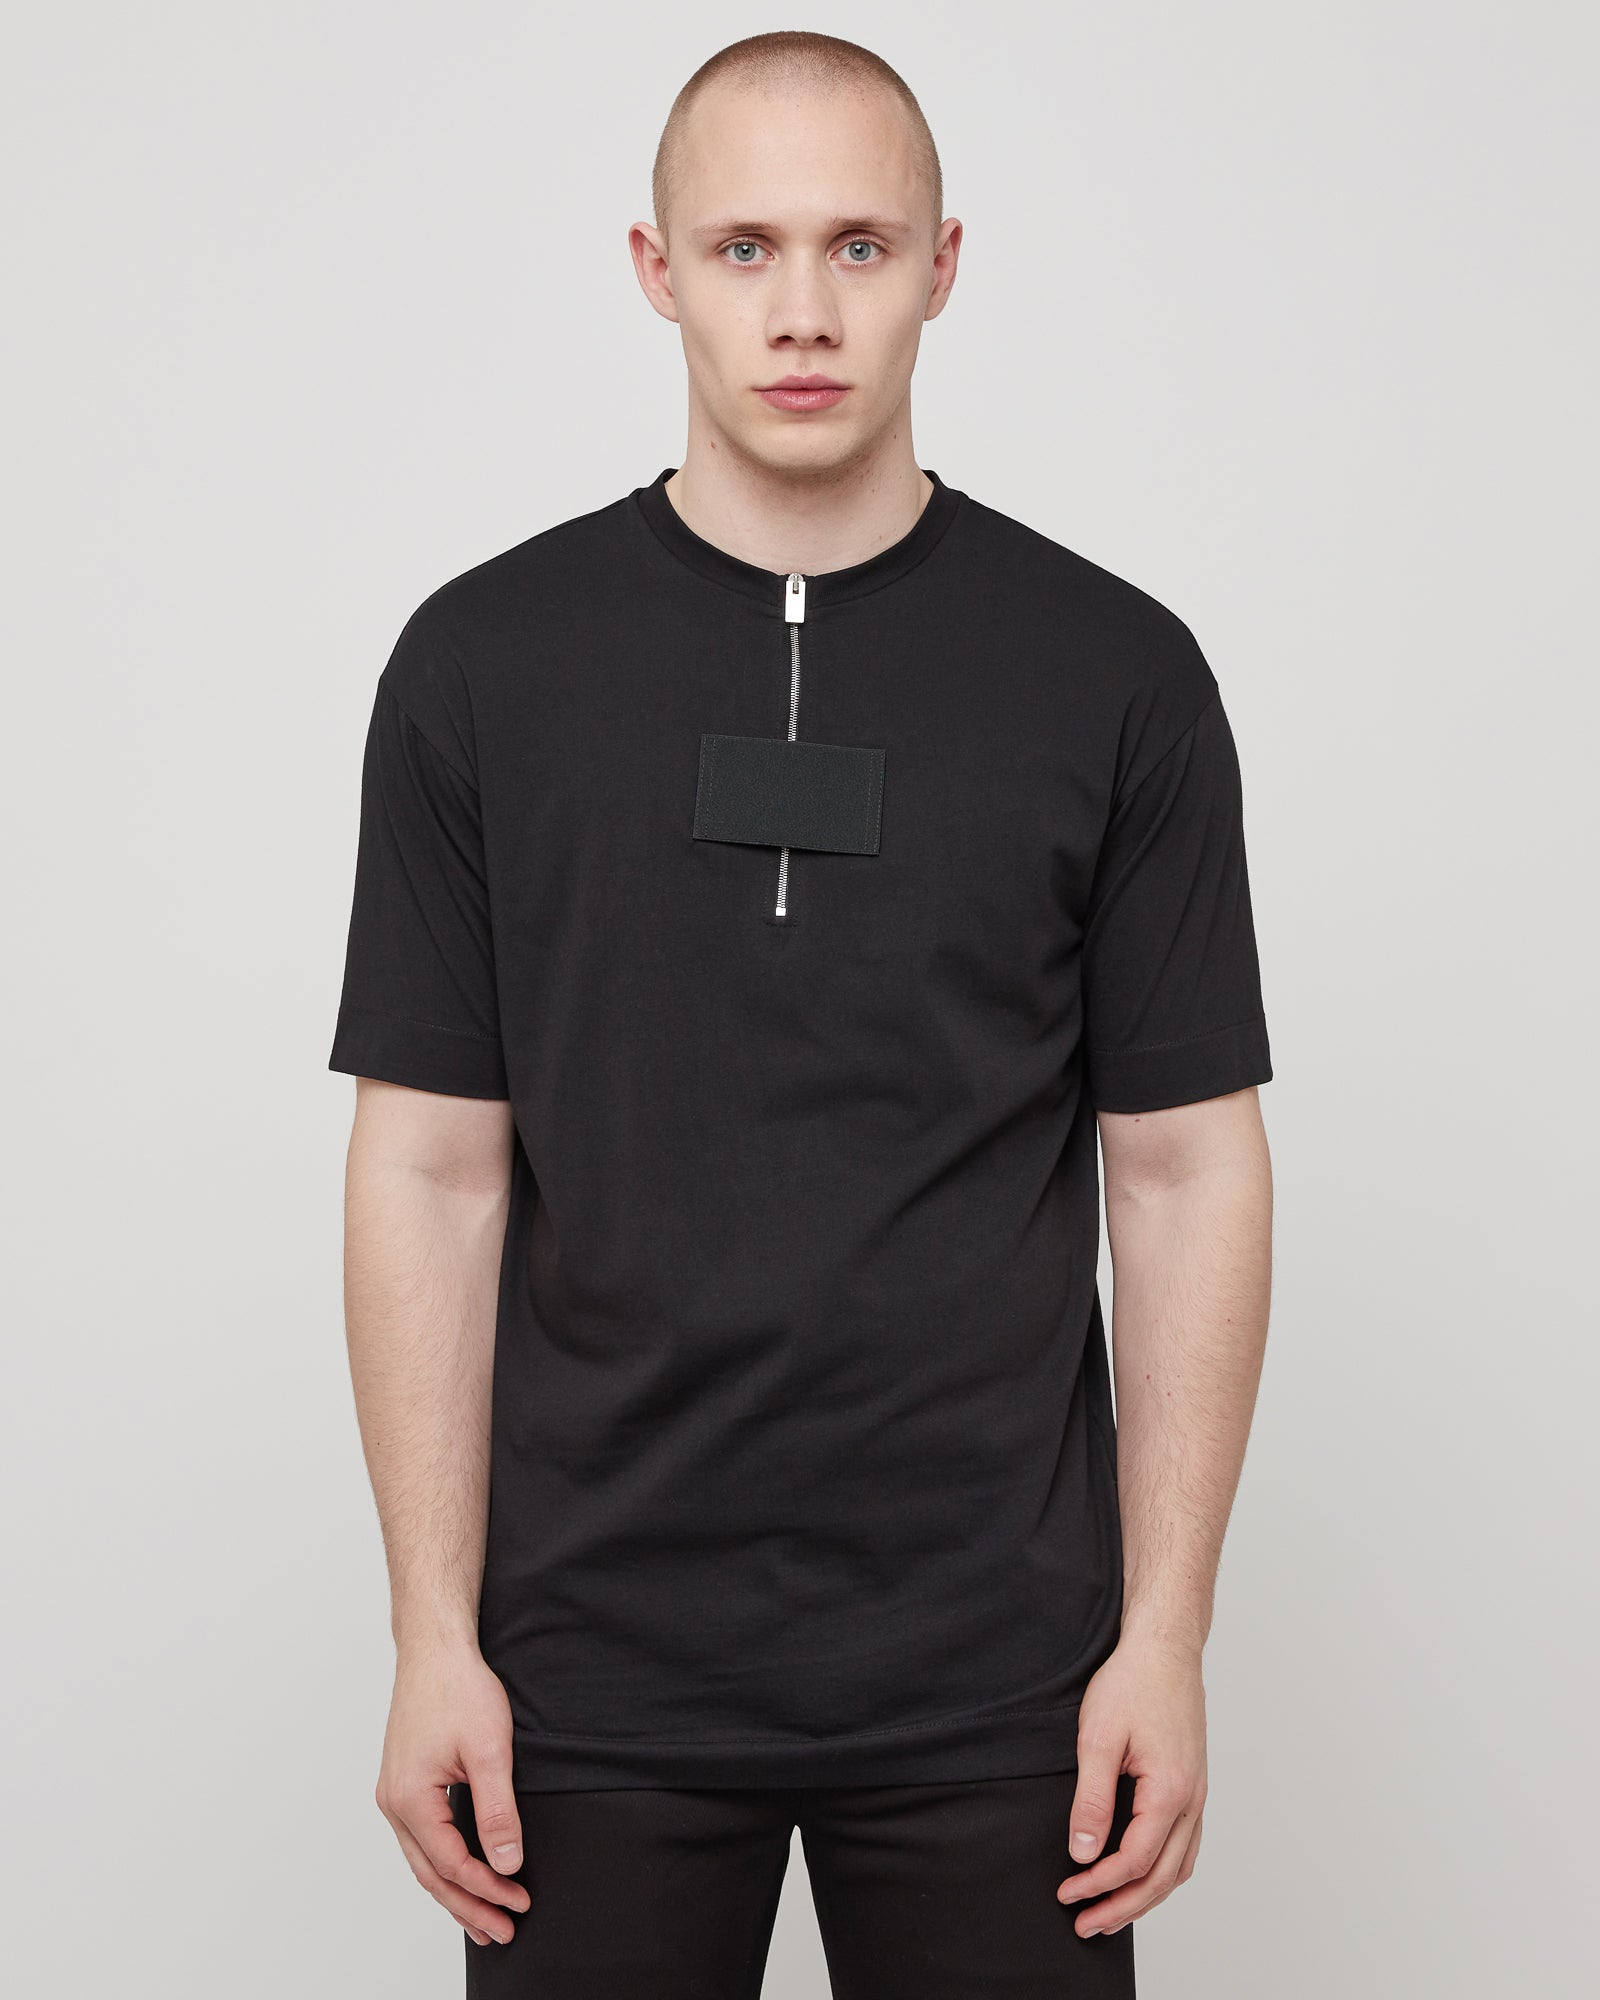 Zipper T-Shirt in Black